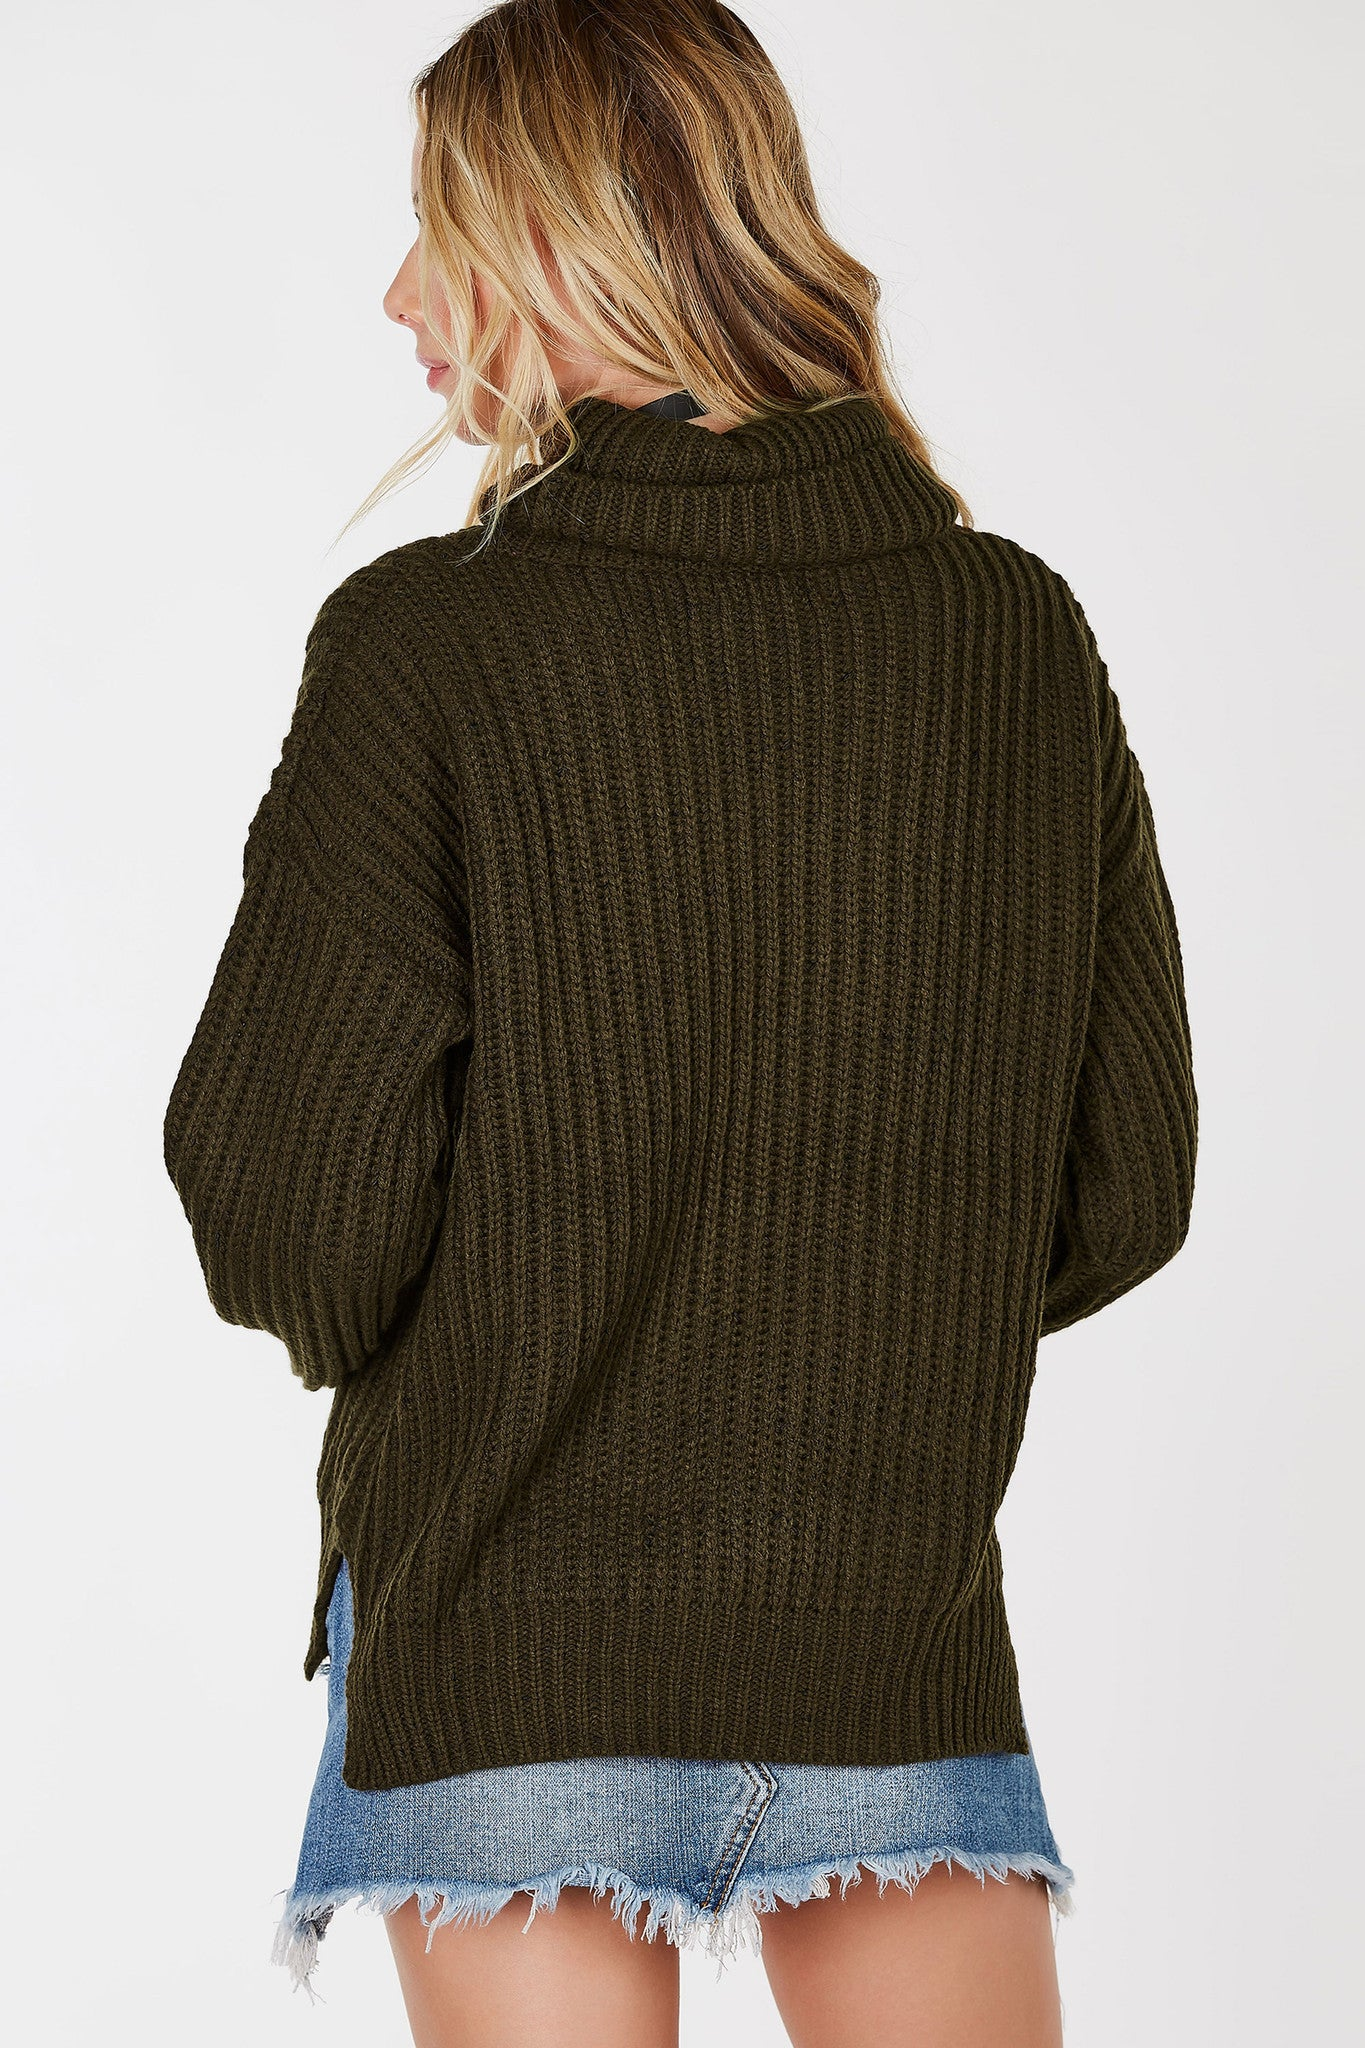 A cozy chunky knit sweater, perfect to start up your Autumn collection. Long sleeves with a stylish turtle neck for extra warmth. So versatile you can style it with just about anything!